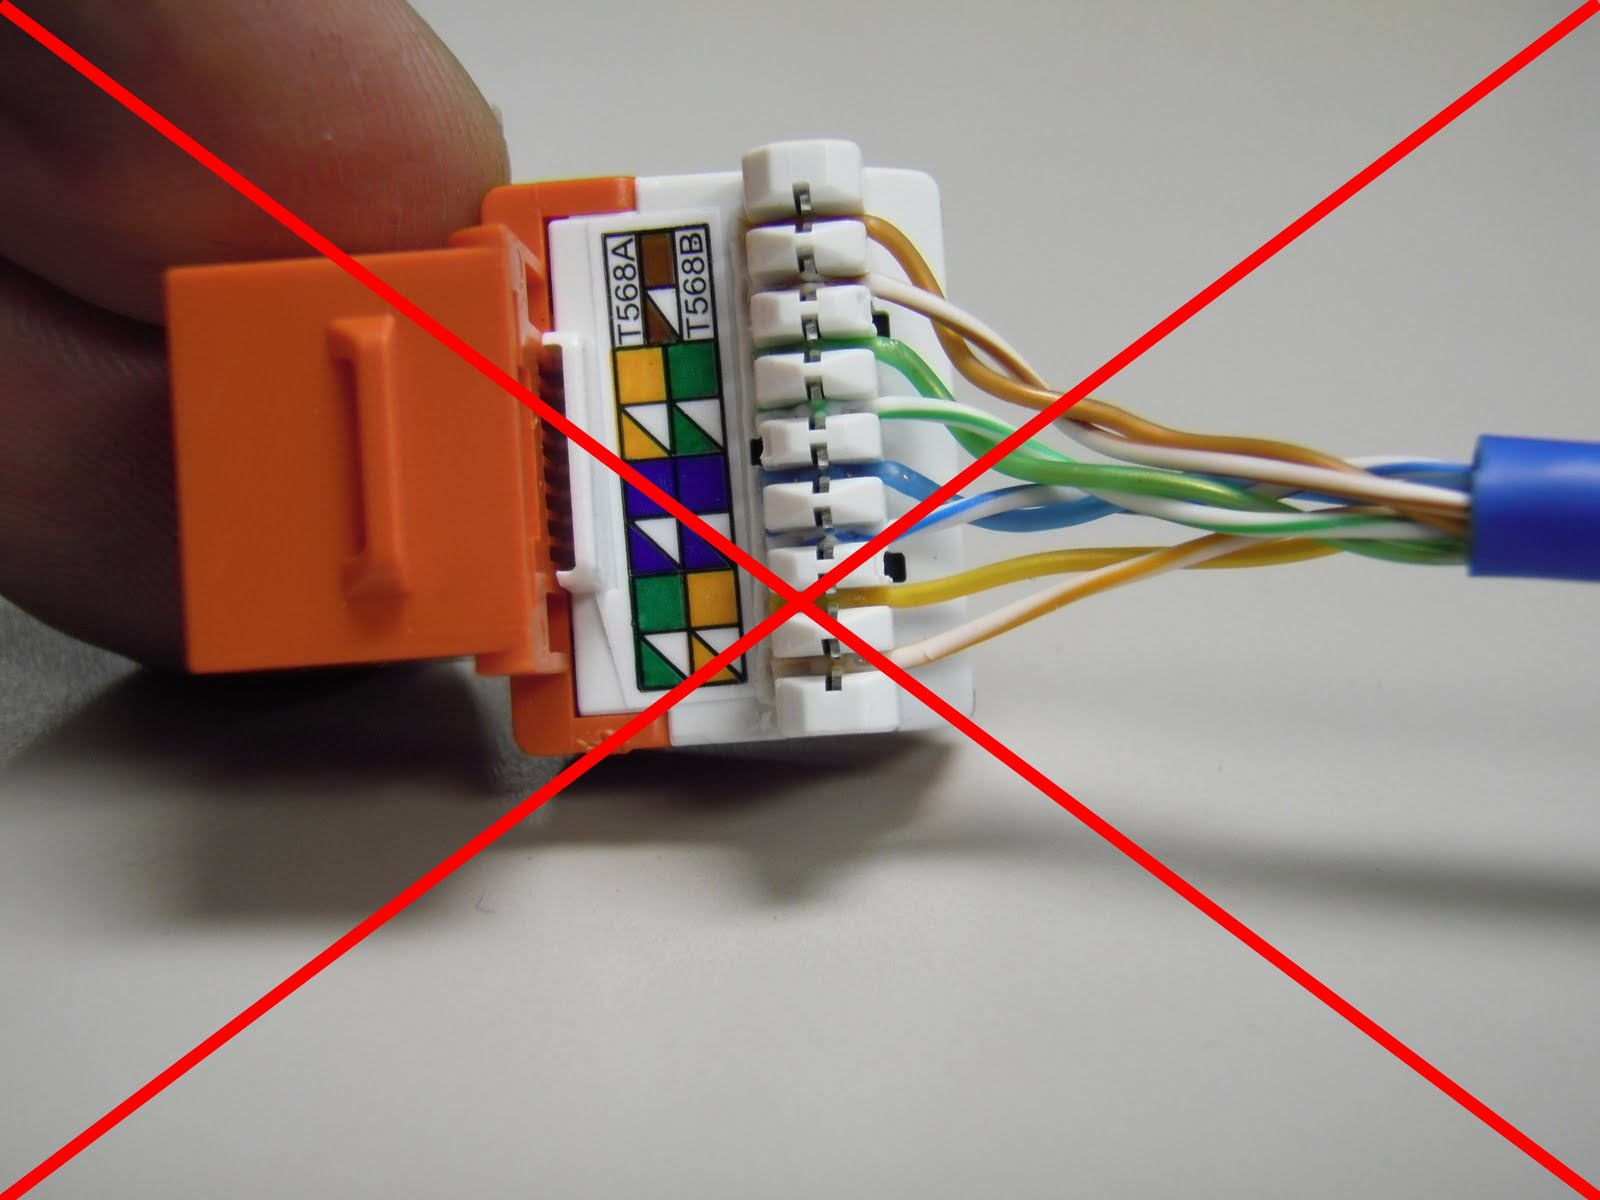 CAT5E+ER+JACK+PUNCHED+WRONG+RED+X the trench how to punch down cat5e cat6 keystone jacks ethernet wall jack wiring diagram at panicattacktreatment.co